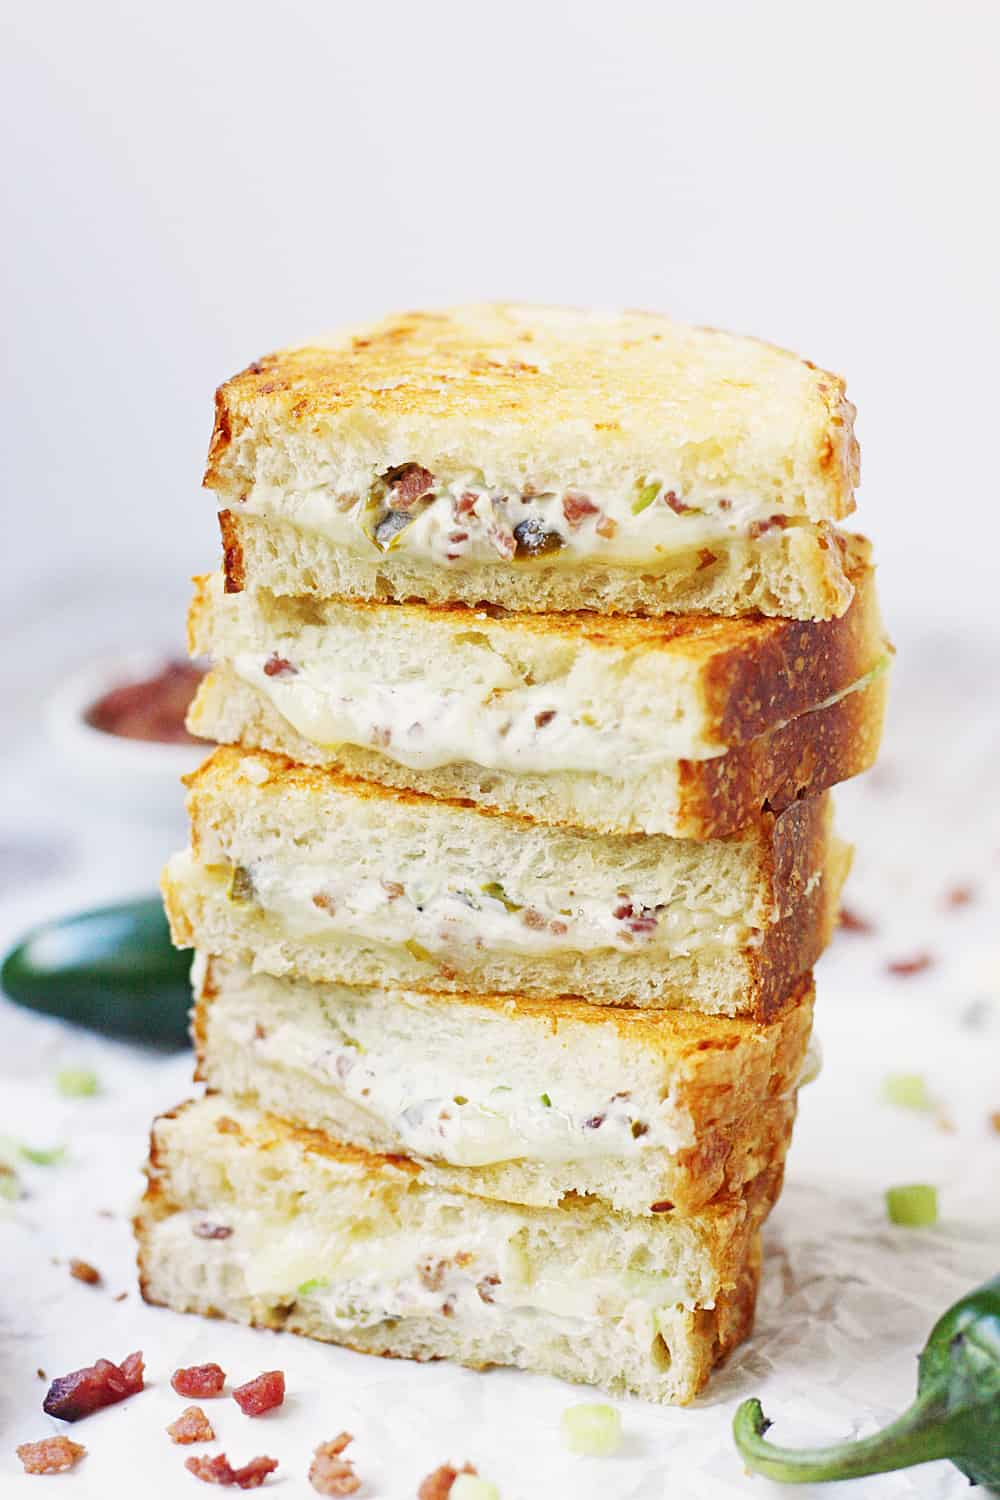 EASY Jalapeno Popper Grilled Cheese Sandwich - This easy jalapeno popper grilled cheese sandwich combines that amazing jalapeno popper flavor with bacon and sharp white cheddar for one irresistible gourmet grilled cheese! #grilledcheese #jalapeno #jalapenopopper #sandwich #grilledcheesesandwich #cheese #easyrecipe #recipe #halfscratched #maindish #savory